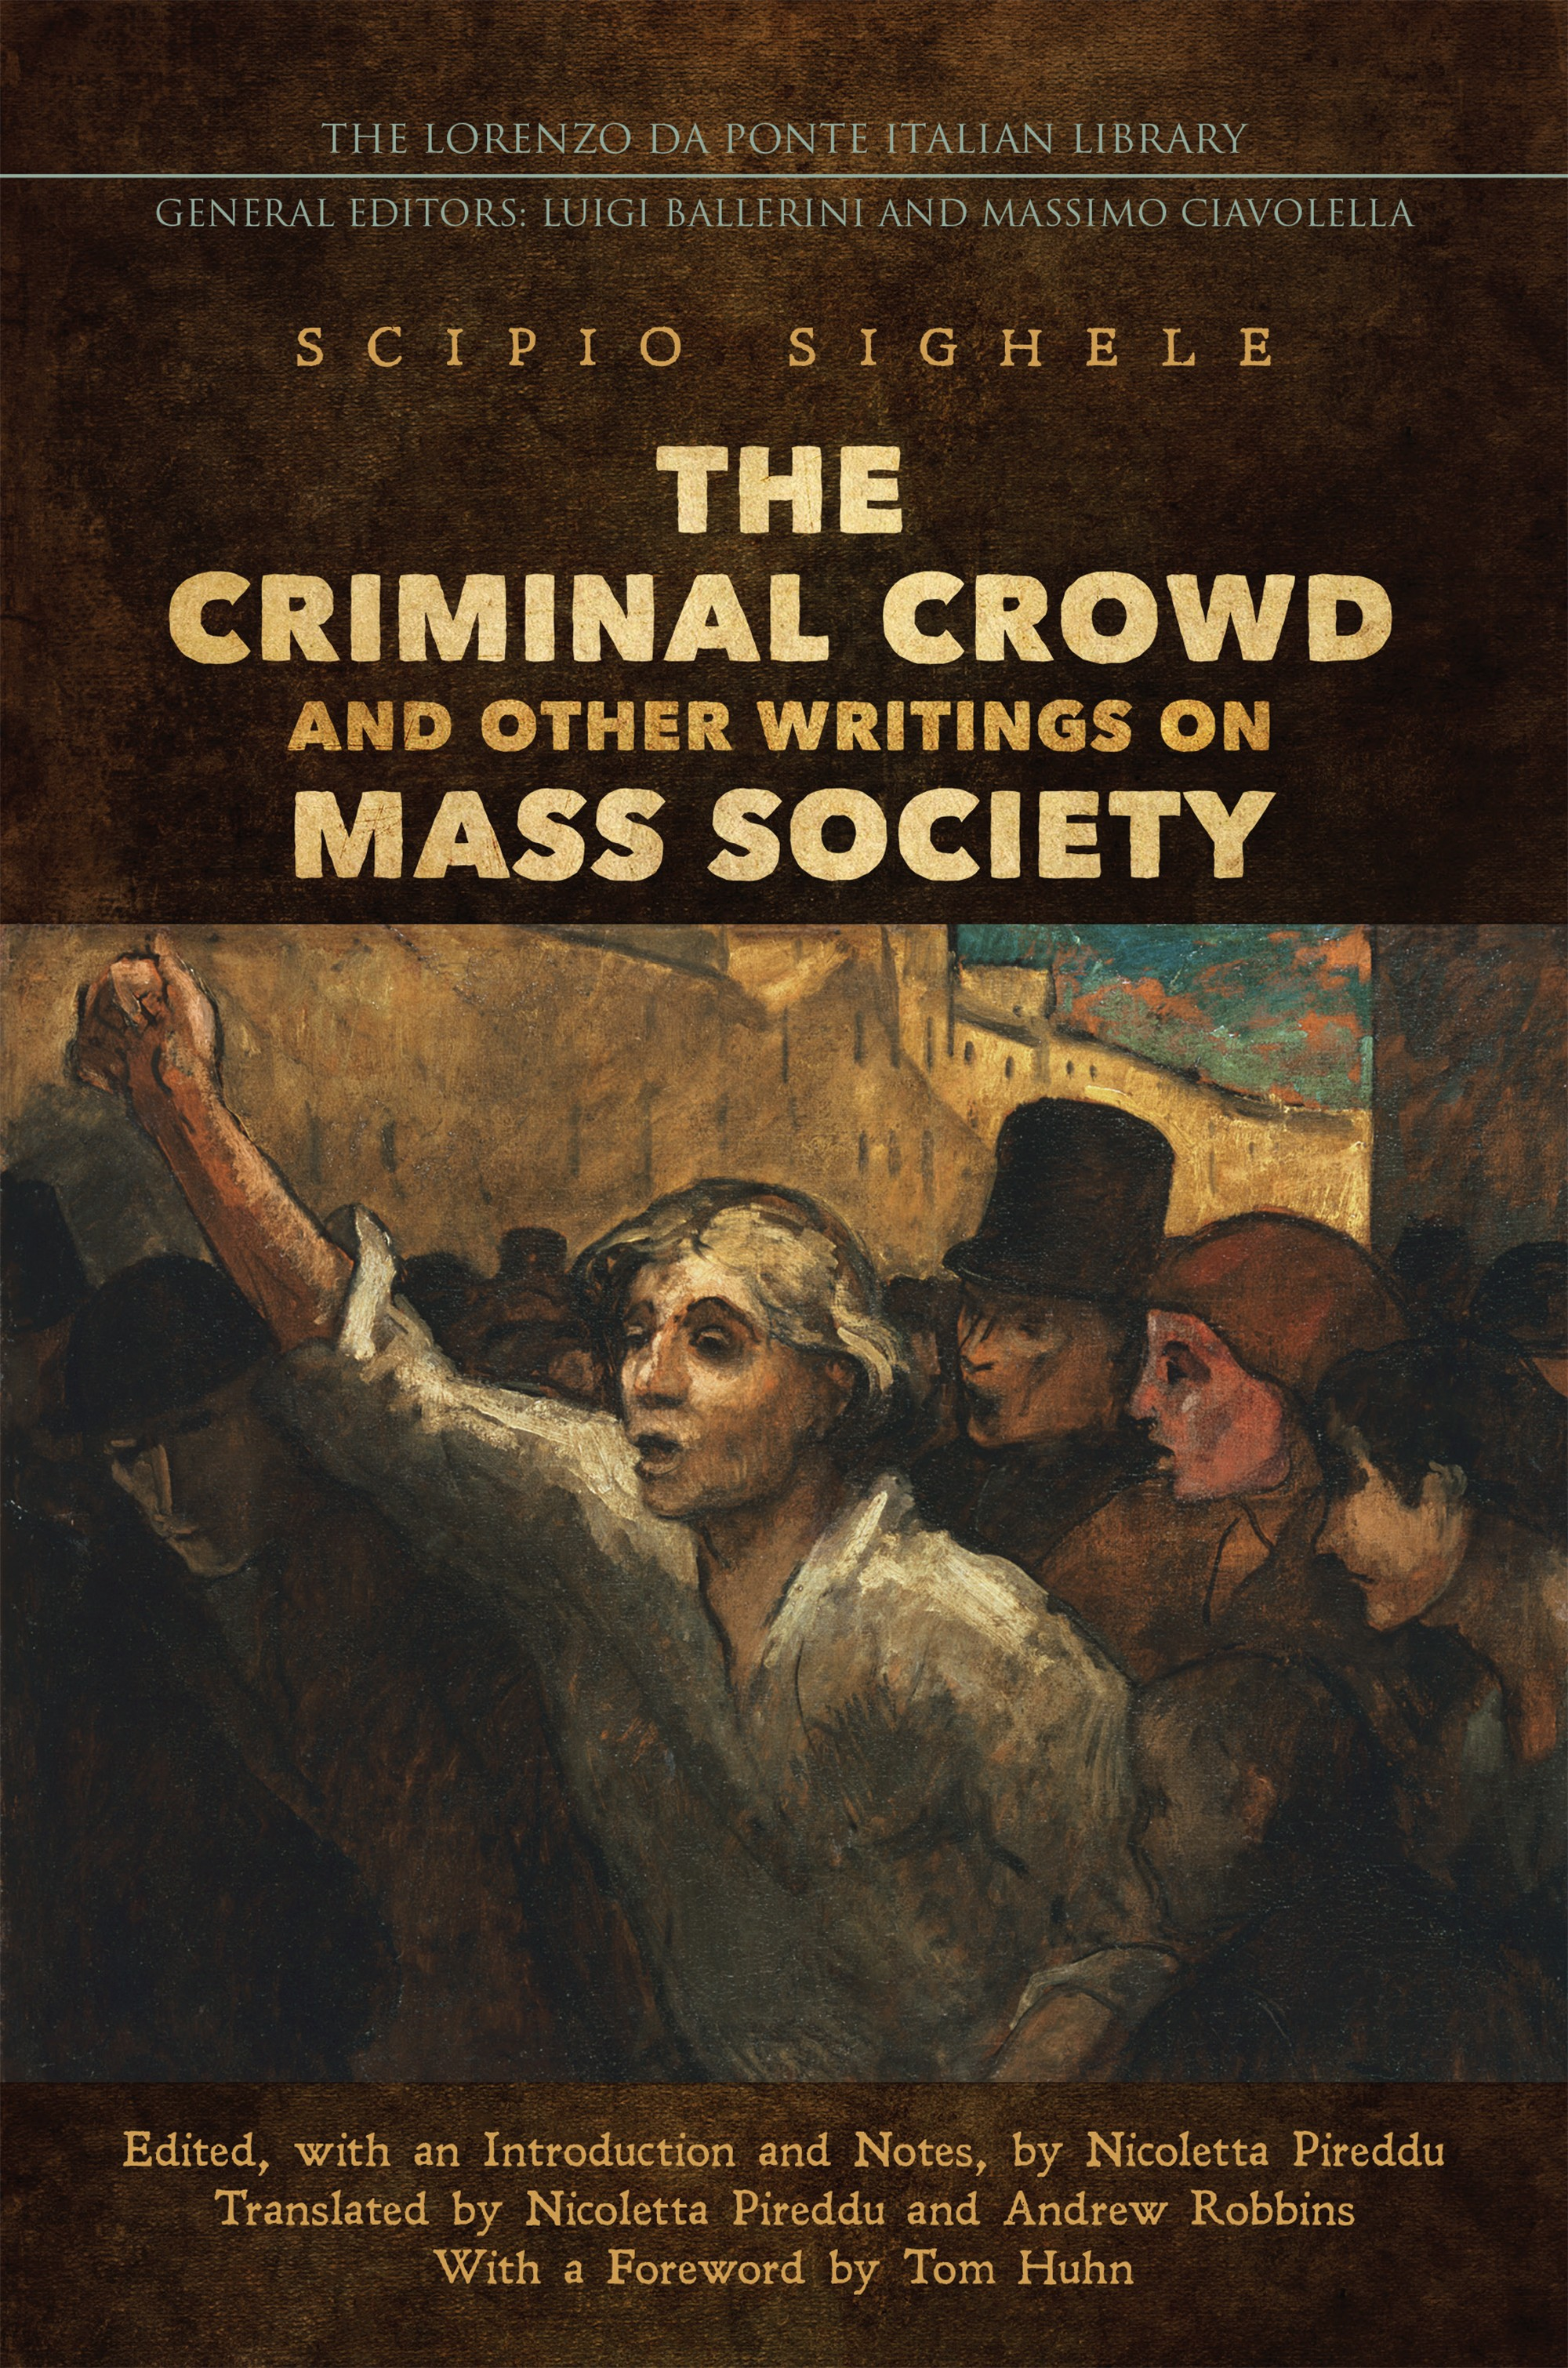 S. Sighele, The Criminal Crowd and Other Writings on Mass Society